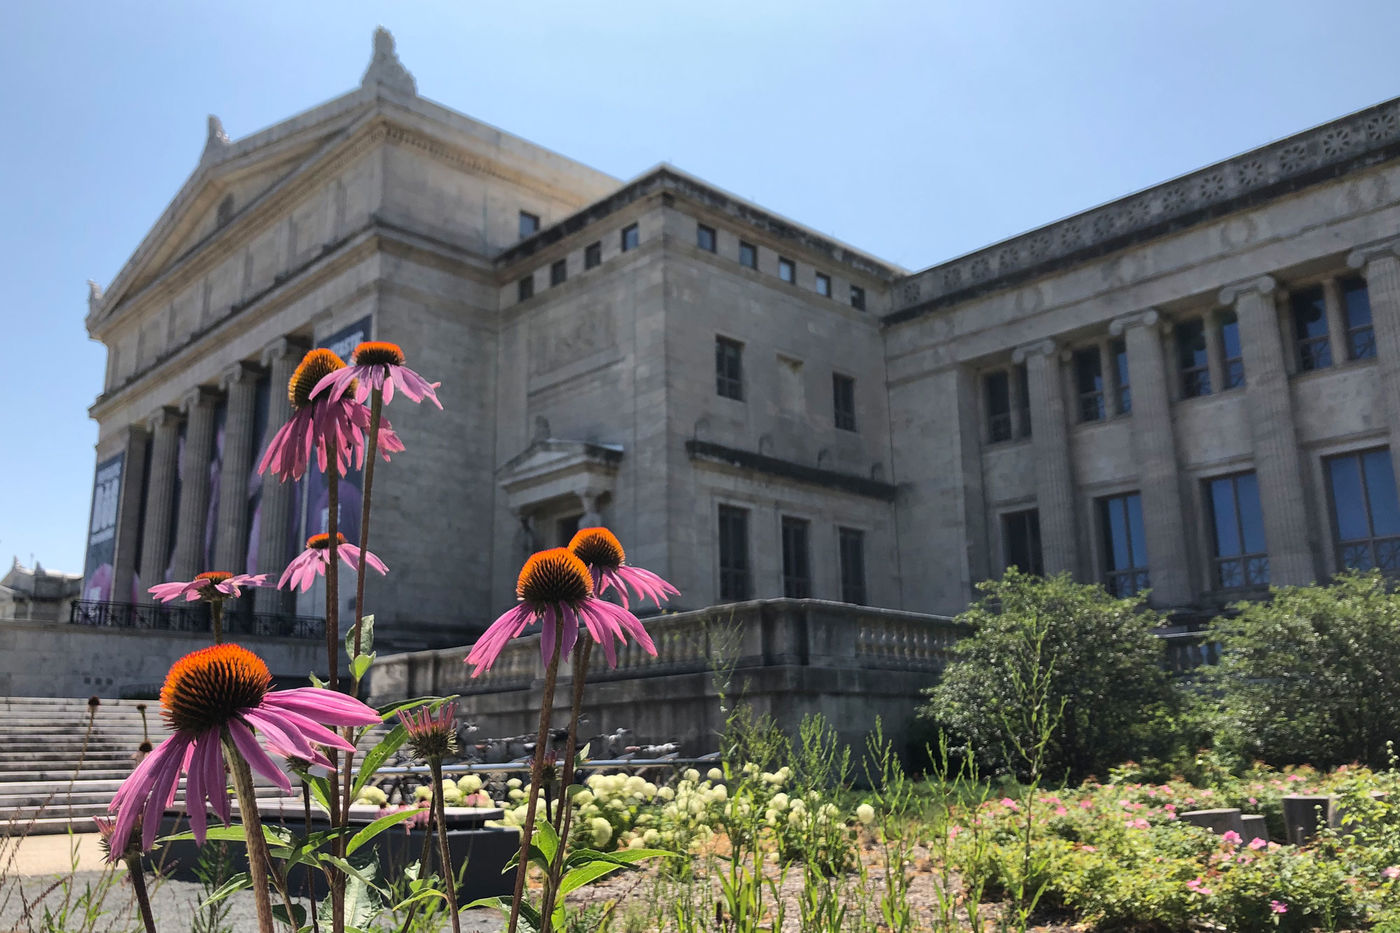 Pink coneflowers in front of the Field Museum's north entrance on a sunny day with clear blue skies.